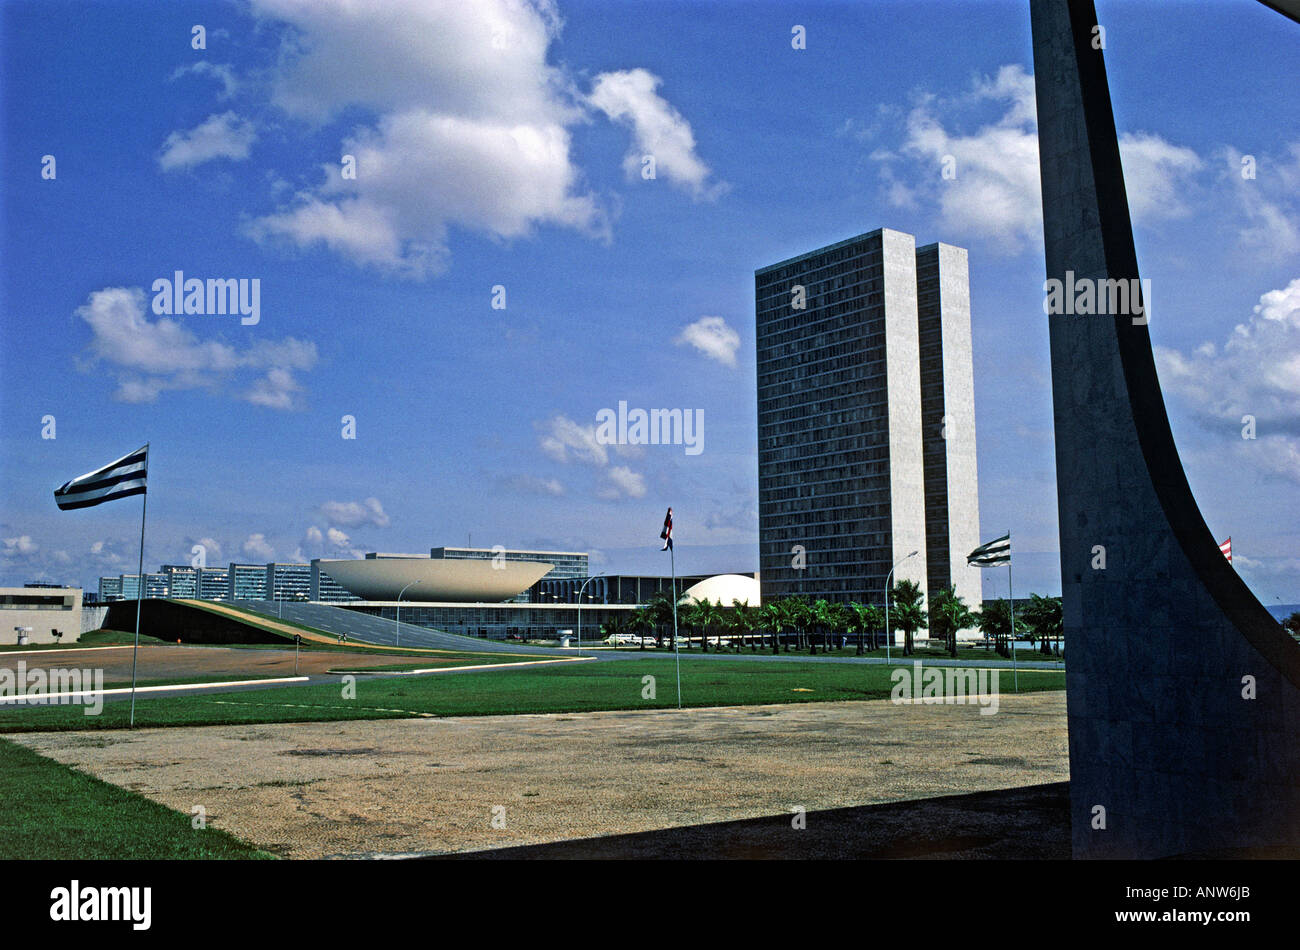 national congress building at praca dos tres podores square city of brasilia state of goias brazil - Stock Image